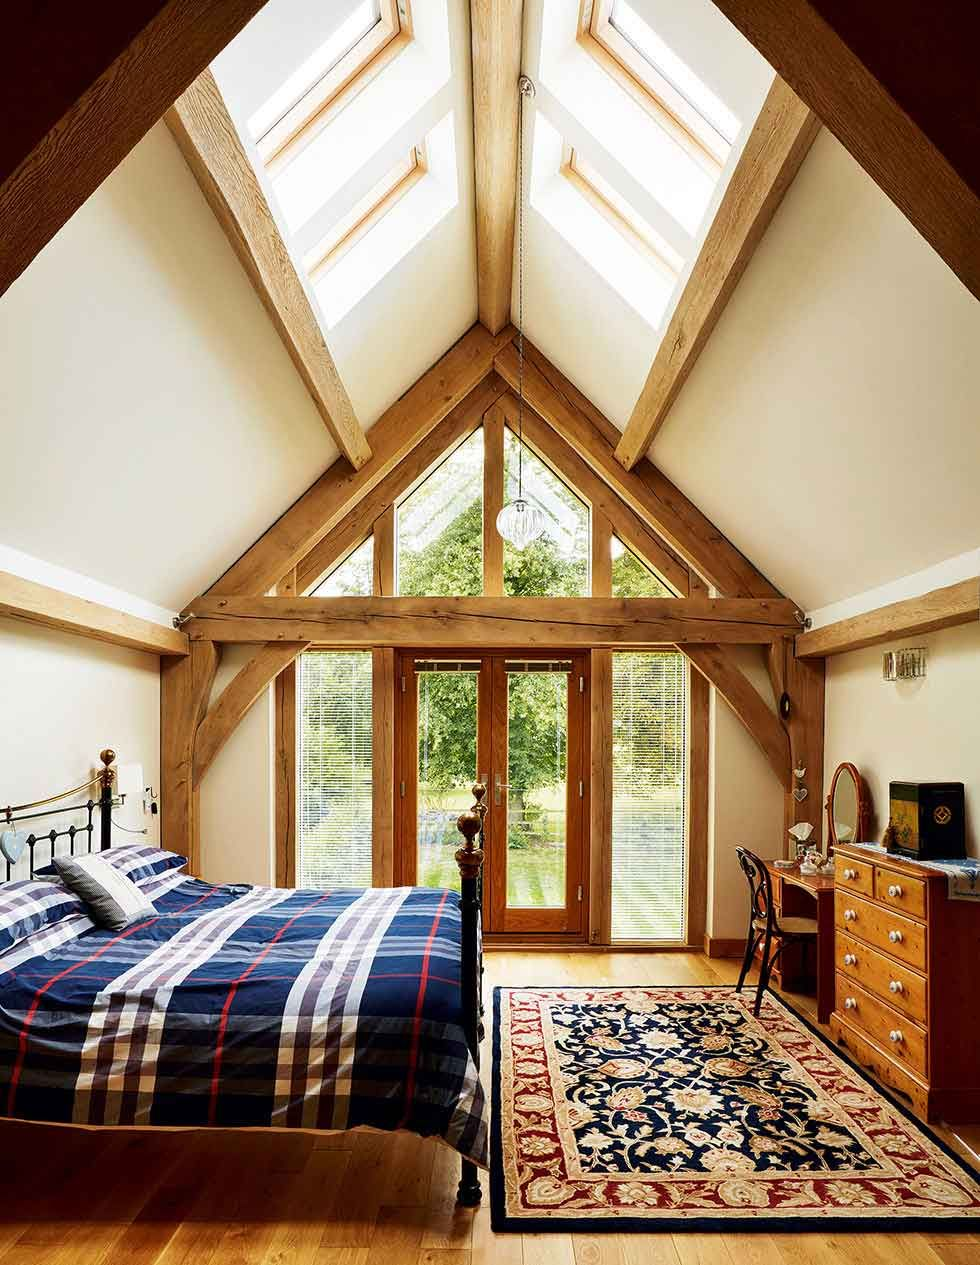 Rooflights in the vaulted ceiling and a glazed gable end ensure this bedroom gets lots of Master bedroom lighting ideas vaulted ceiling